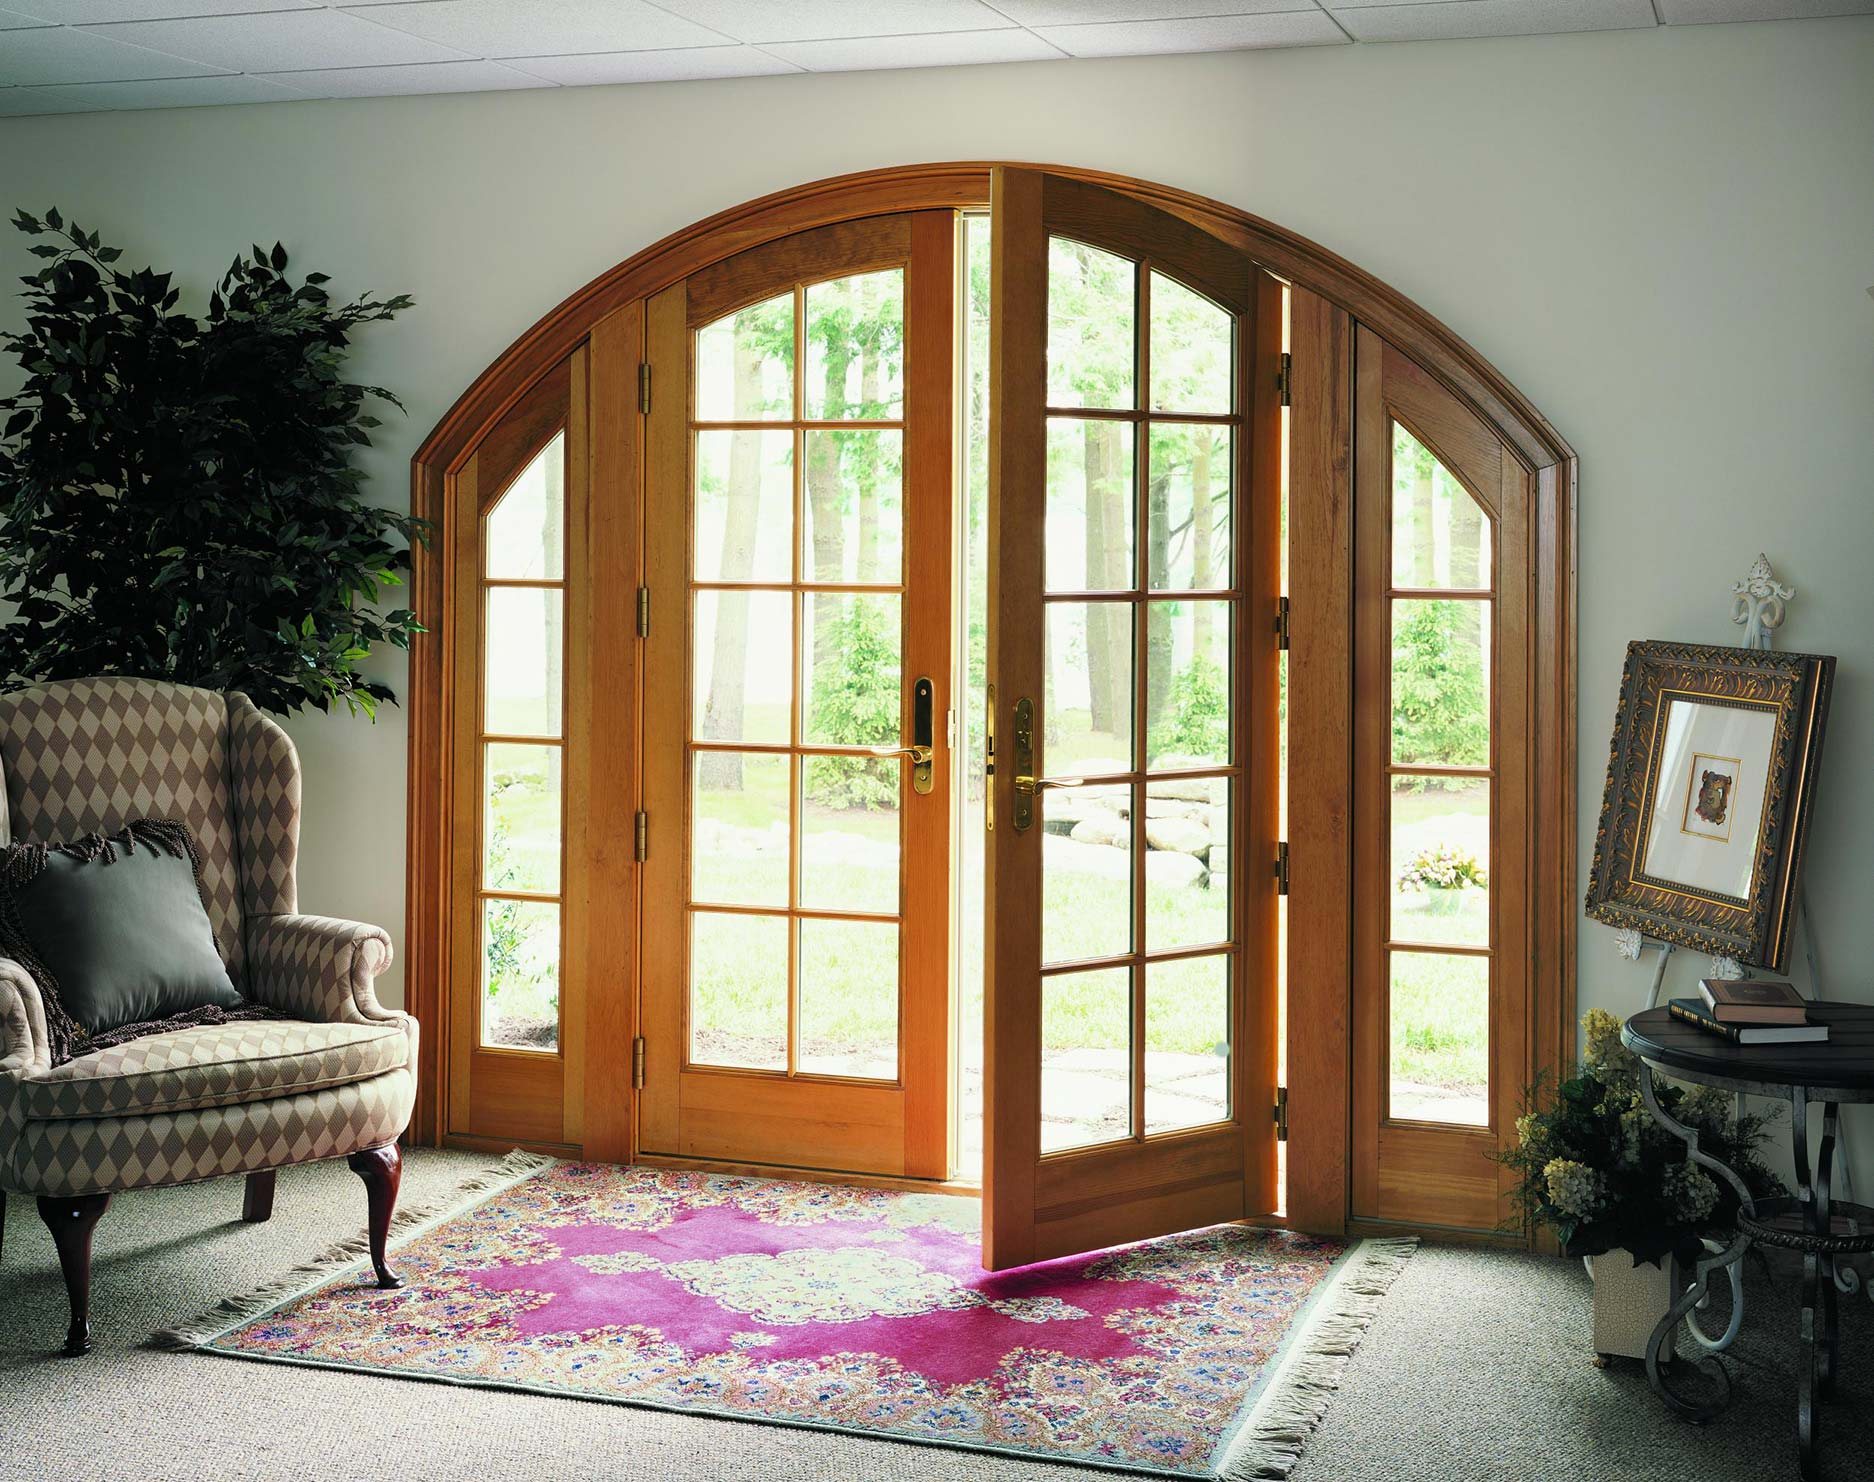 Marvin Archtop French Doors